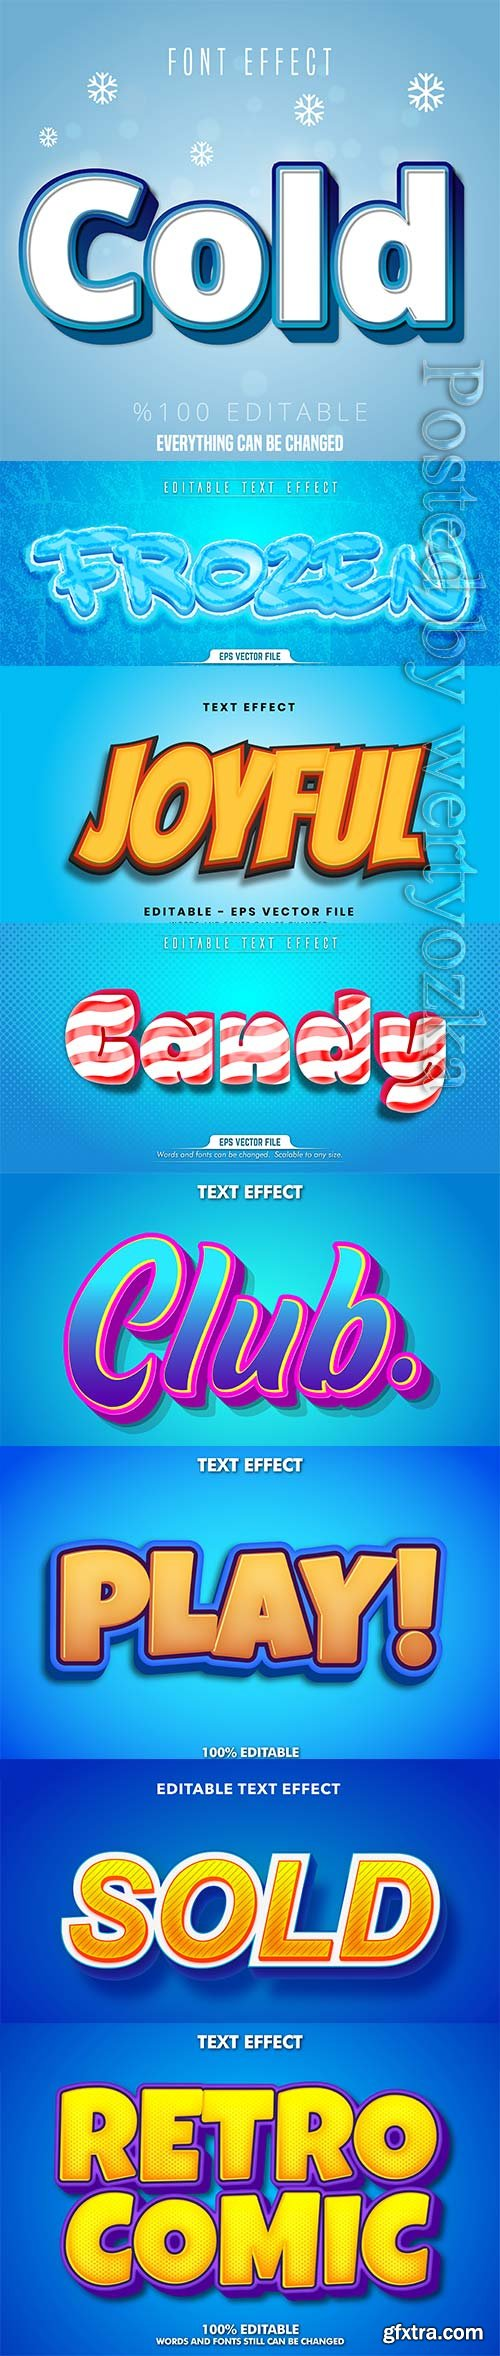 3d editable text style effect vector vol 310